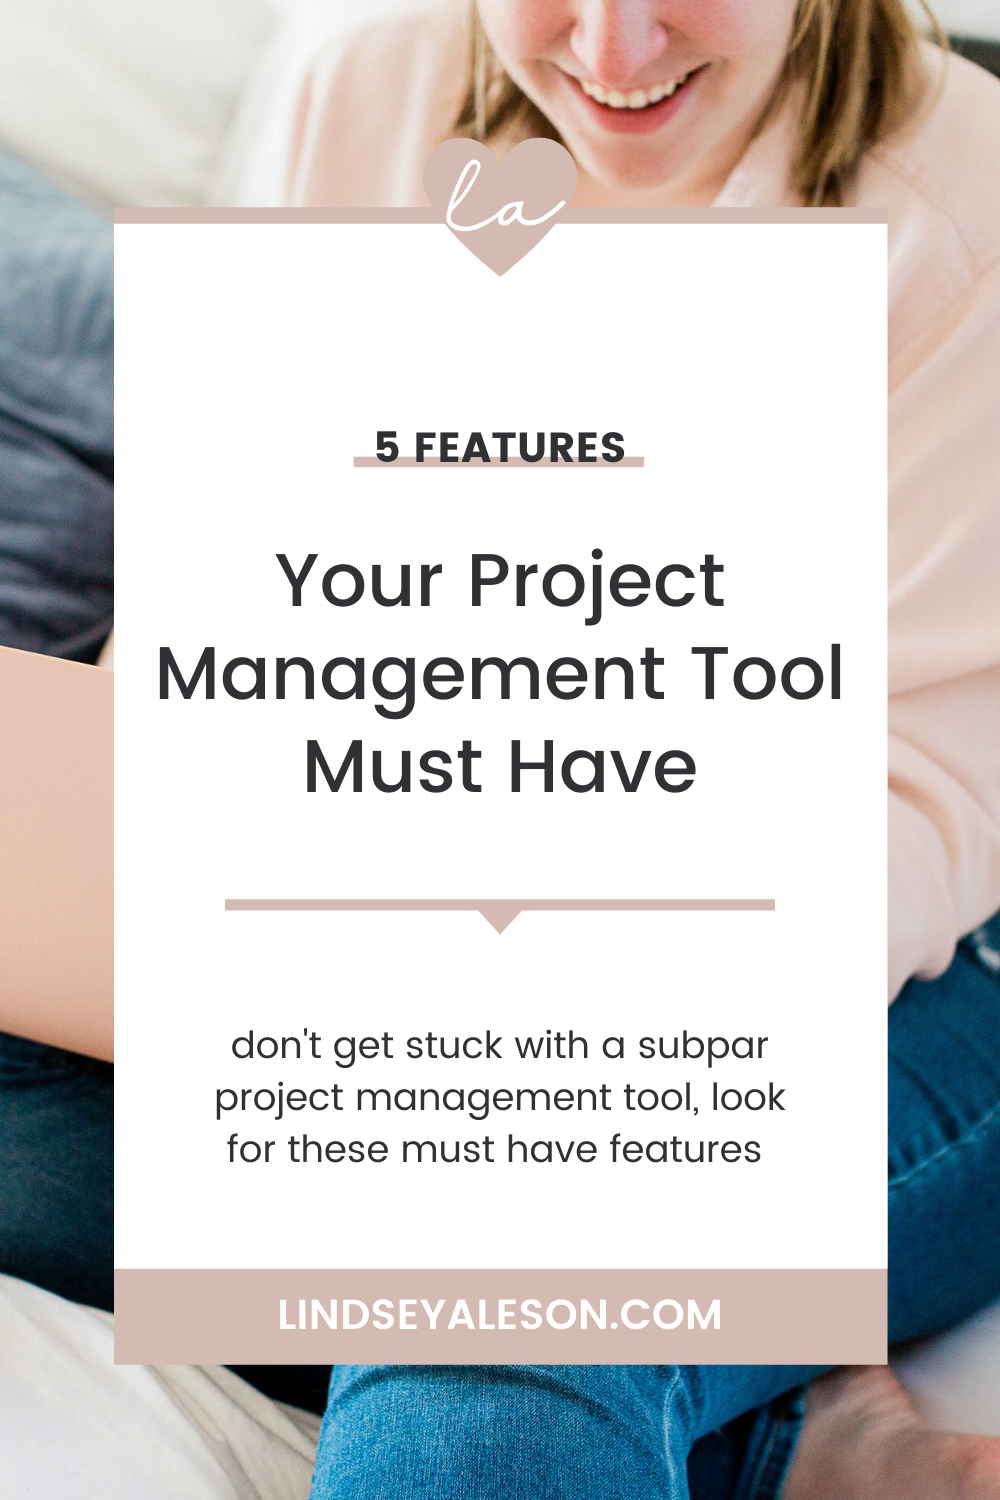 5 Features Your Project Management Tool Must Have